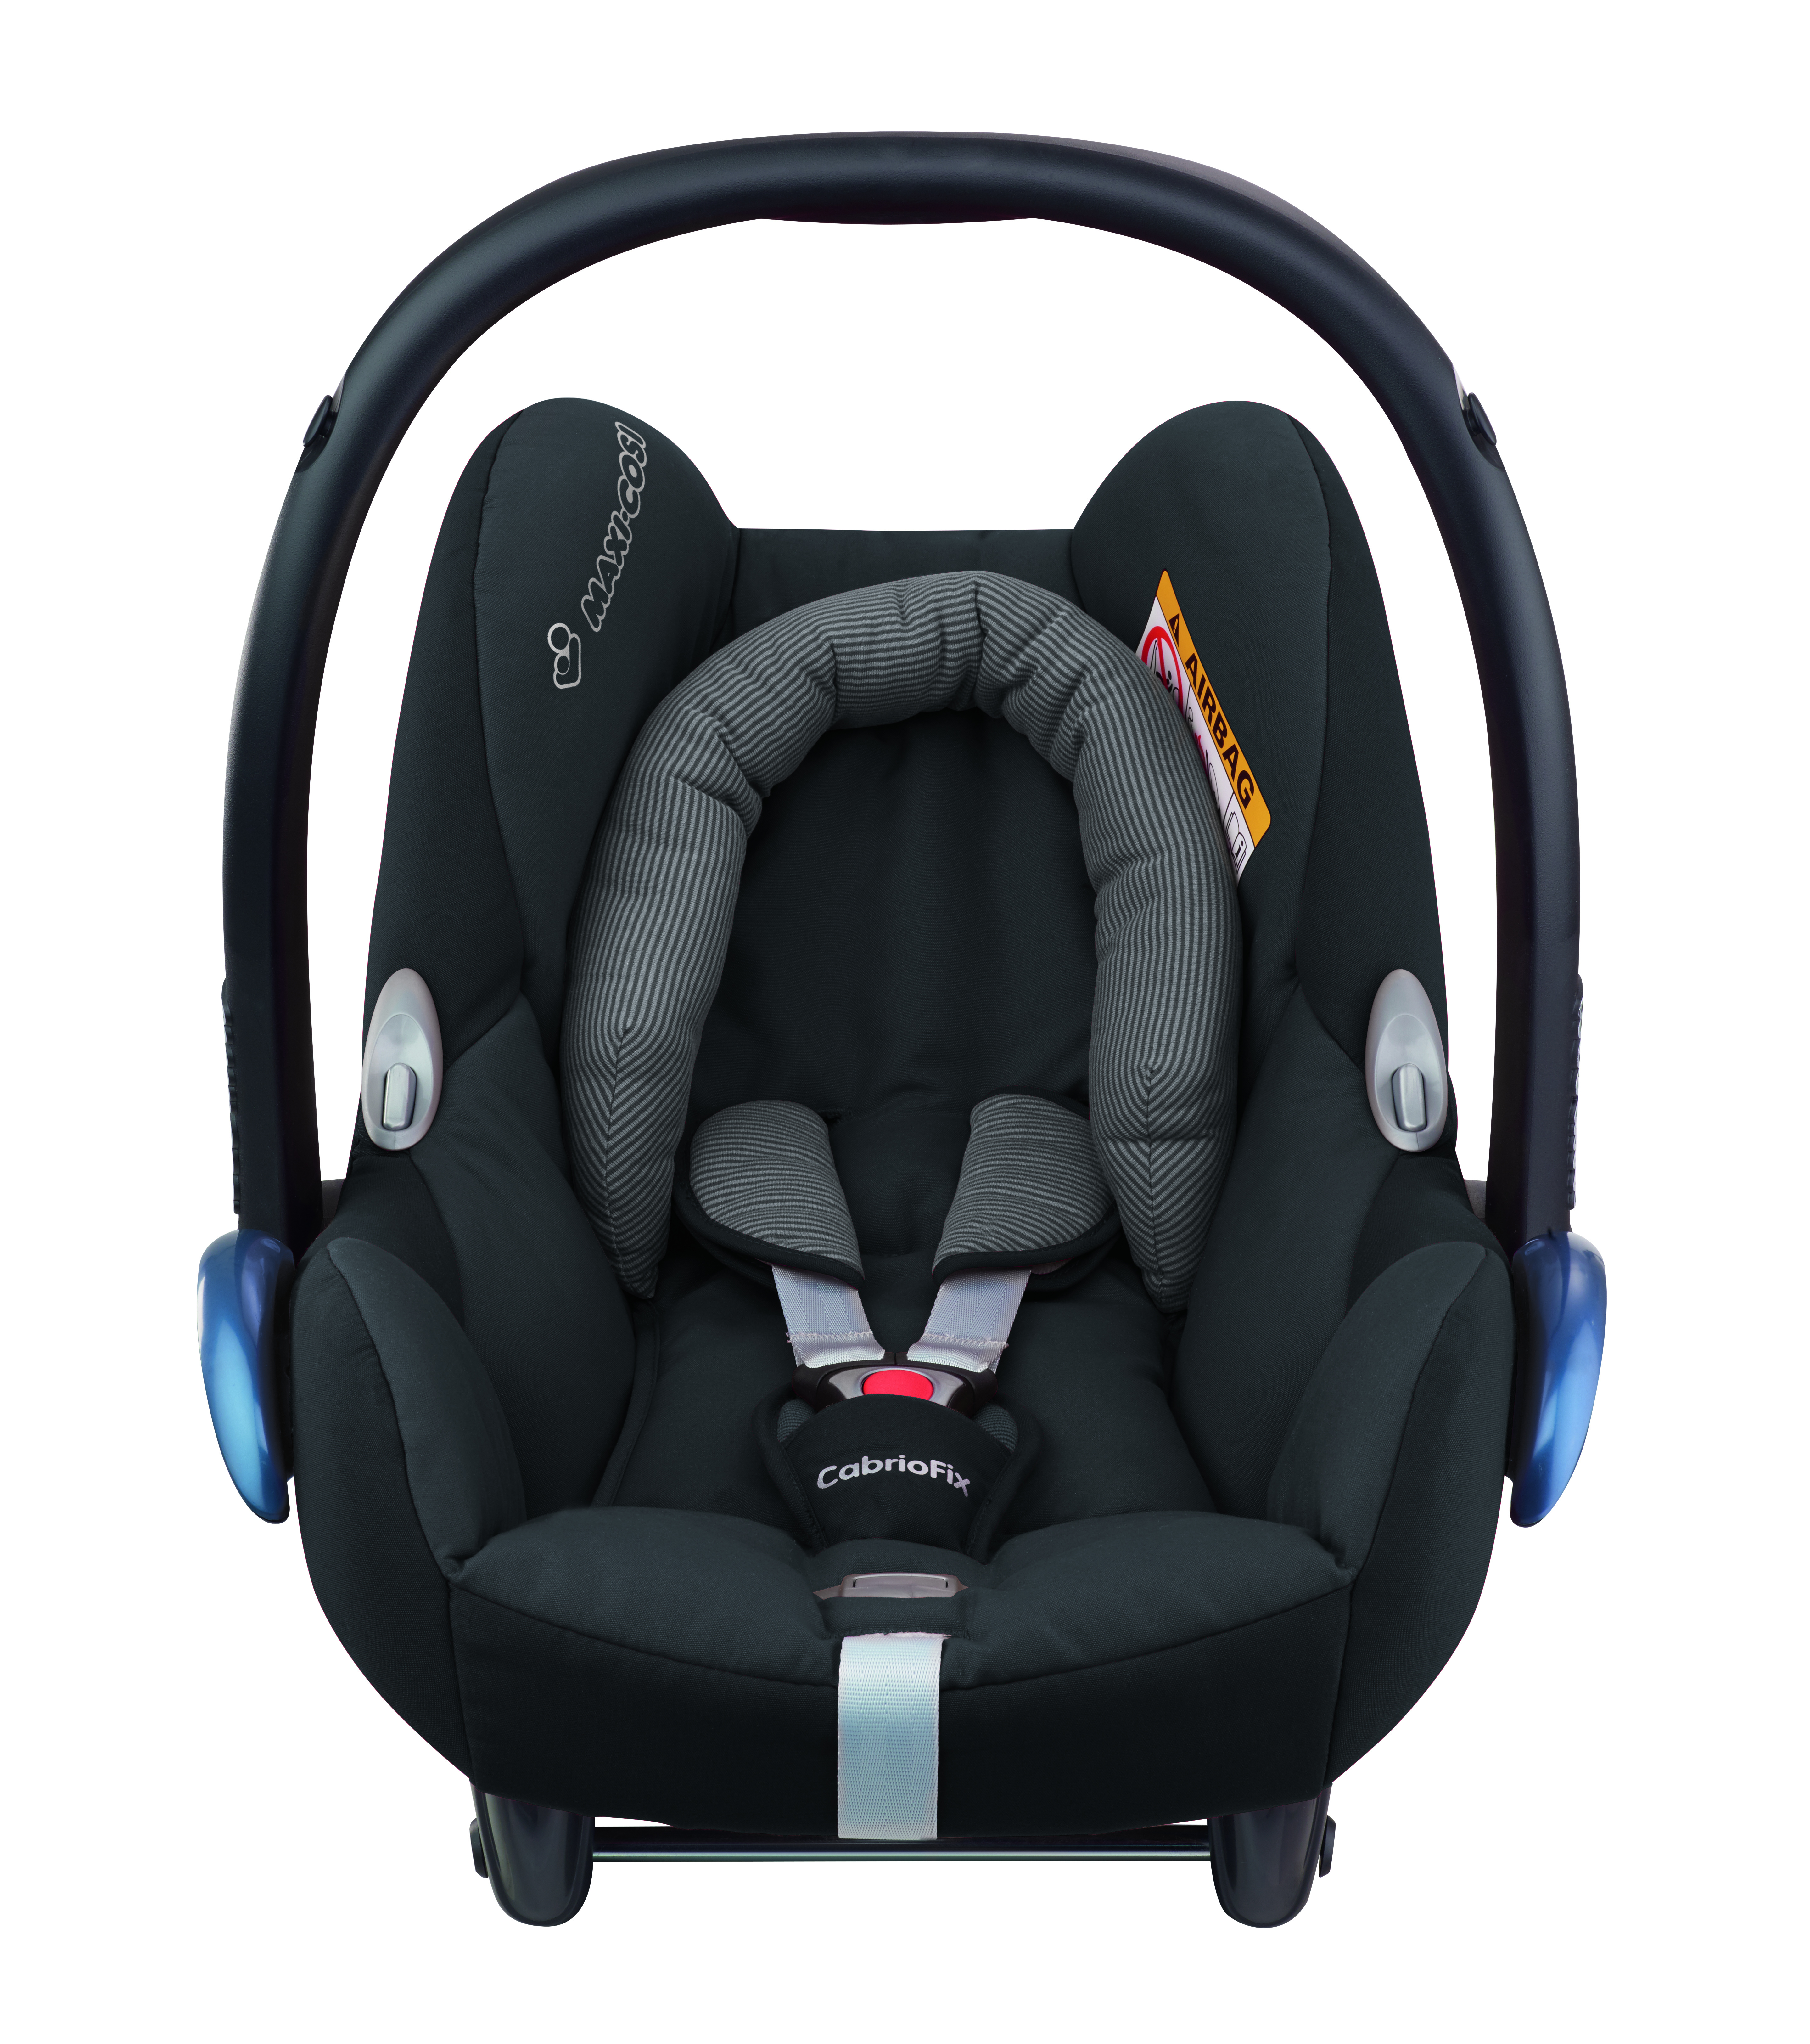 maxicosi_carseat_babycarseat_cabriofix_2016_black_blackraven_front